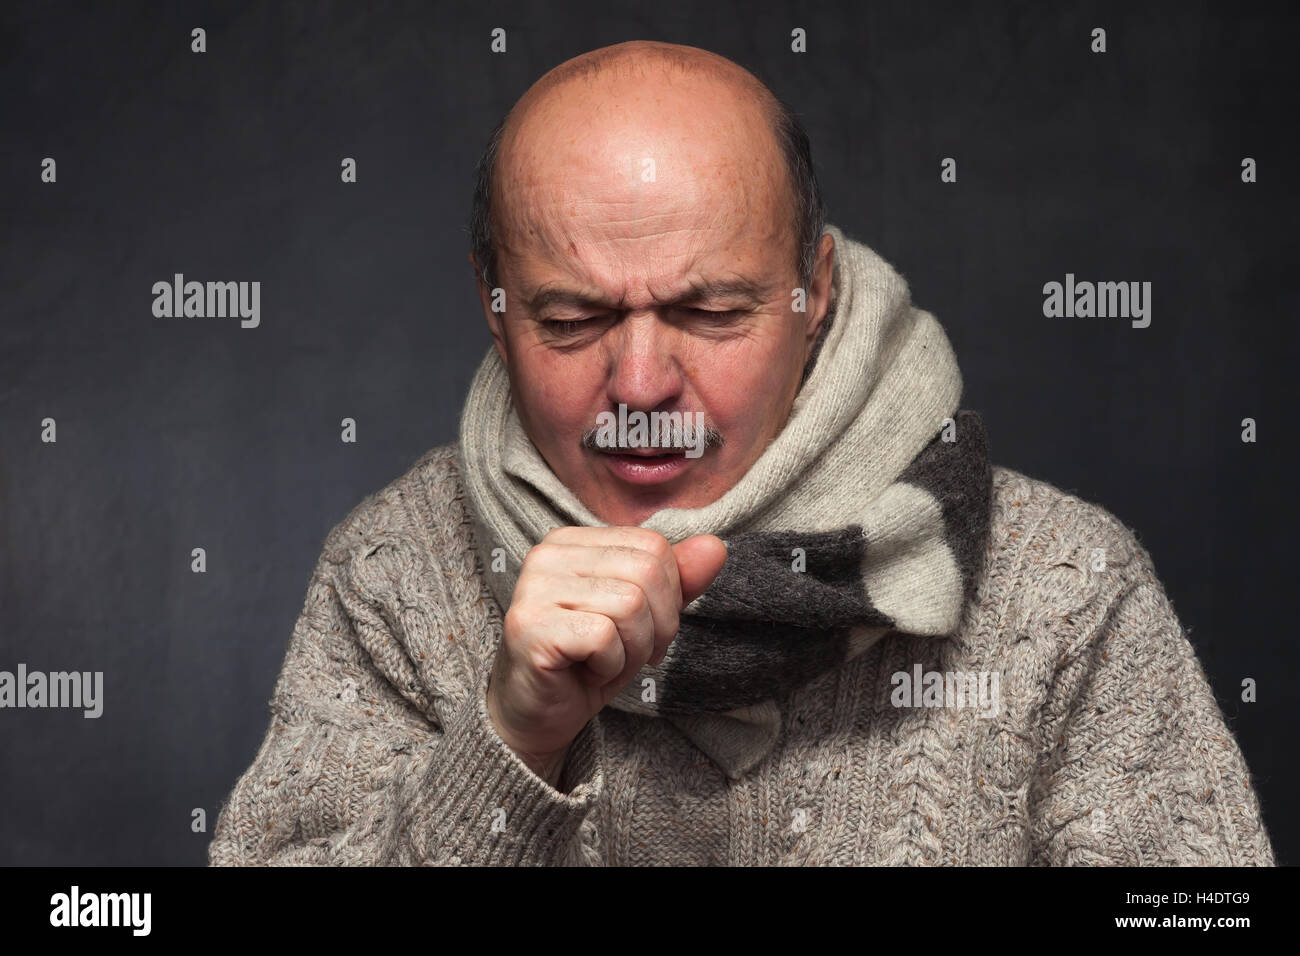 Elderly man is ill from colds or pneumonia. elderly man in a sweater and a woolen scarf strongly coughs - Stock Image